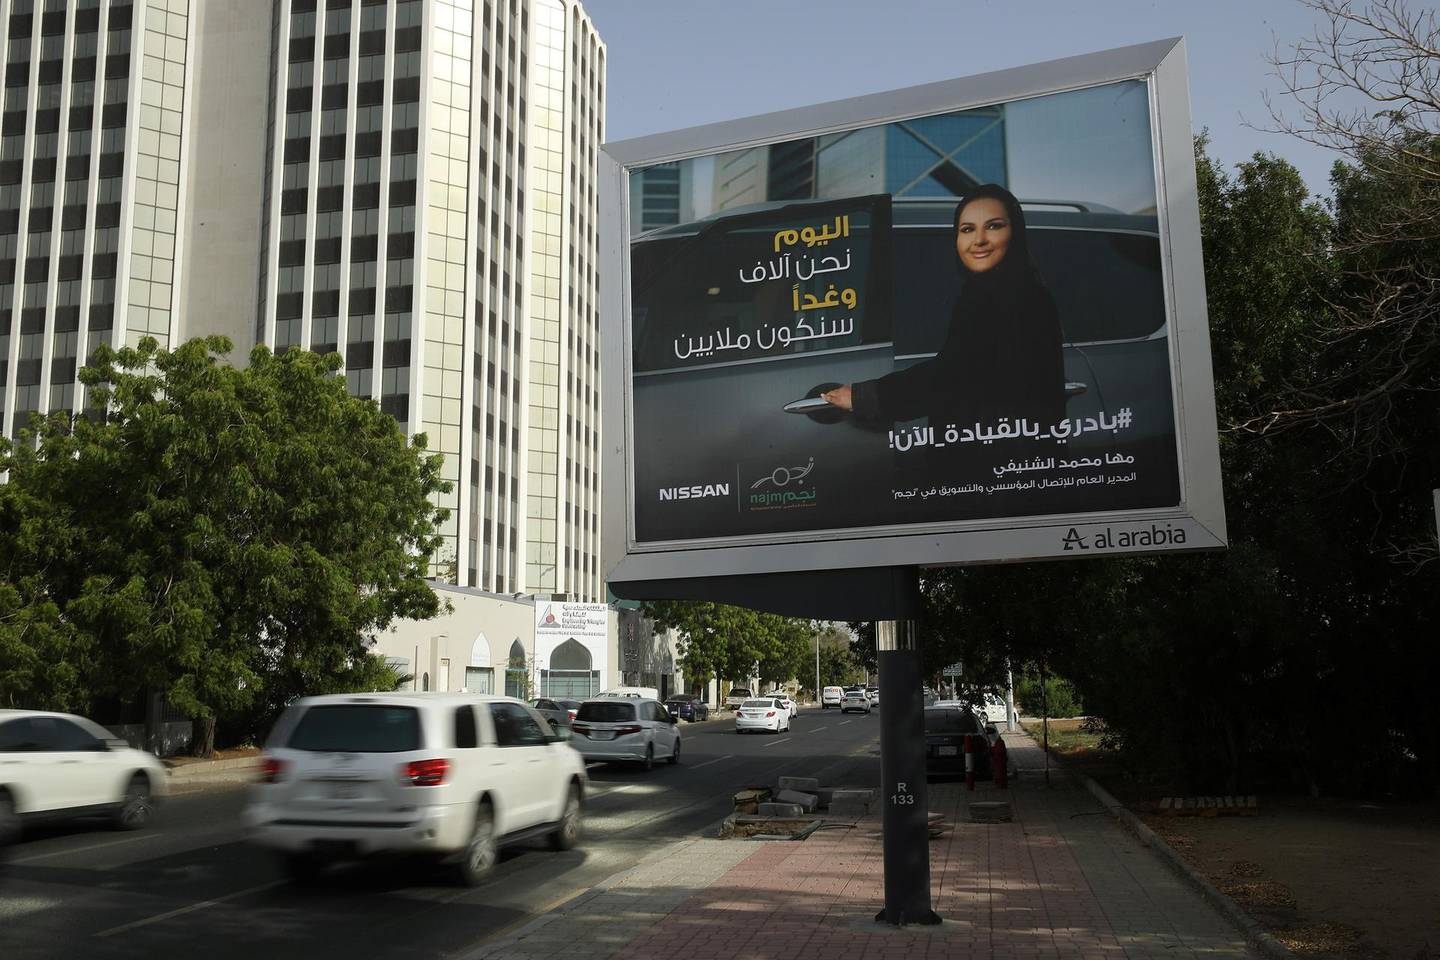 """JEDDAH, SAUDI ARABIA - JUNE 24:  An advertising billboard for Japanese automaker Nissan shows a woman about to get into a car on the day women are legally allowed to drive in Saudi Arabia on June 24, 2018 in Jeddah, Saudi Arabia. """"Today is such a historical day, we've been waiting for this for such a long time,"""" she said. Saudi Arabia has today lifted its ban on women driving, which had been in place since 1957. The Saudi government, under Crown Prince Mohammad Bin Salman, is phasing in an ongoing series of reforms to both diversify the Saudi economy and to liberalize its society. The reforms also seek to empower women by restoring them basic legal rights, allowing them increasing independence and encouraging their participation in the workforce. Saudi Arabia is among the most conservative countries in the world and women have traditionally had much fewer rights than men.  (Photo by Sean Gallup/Getty Images)"""